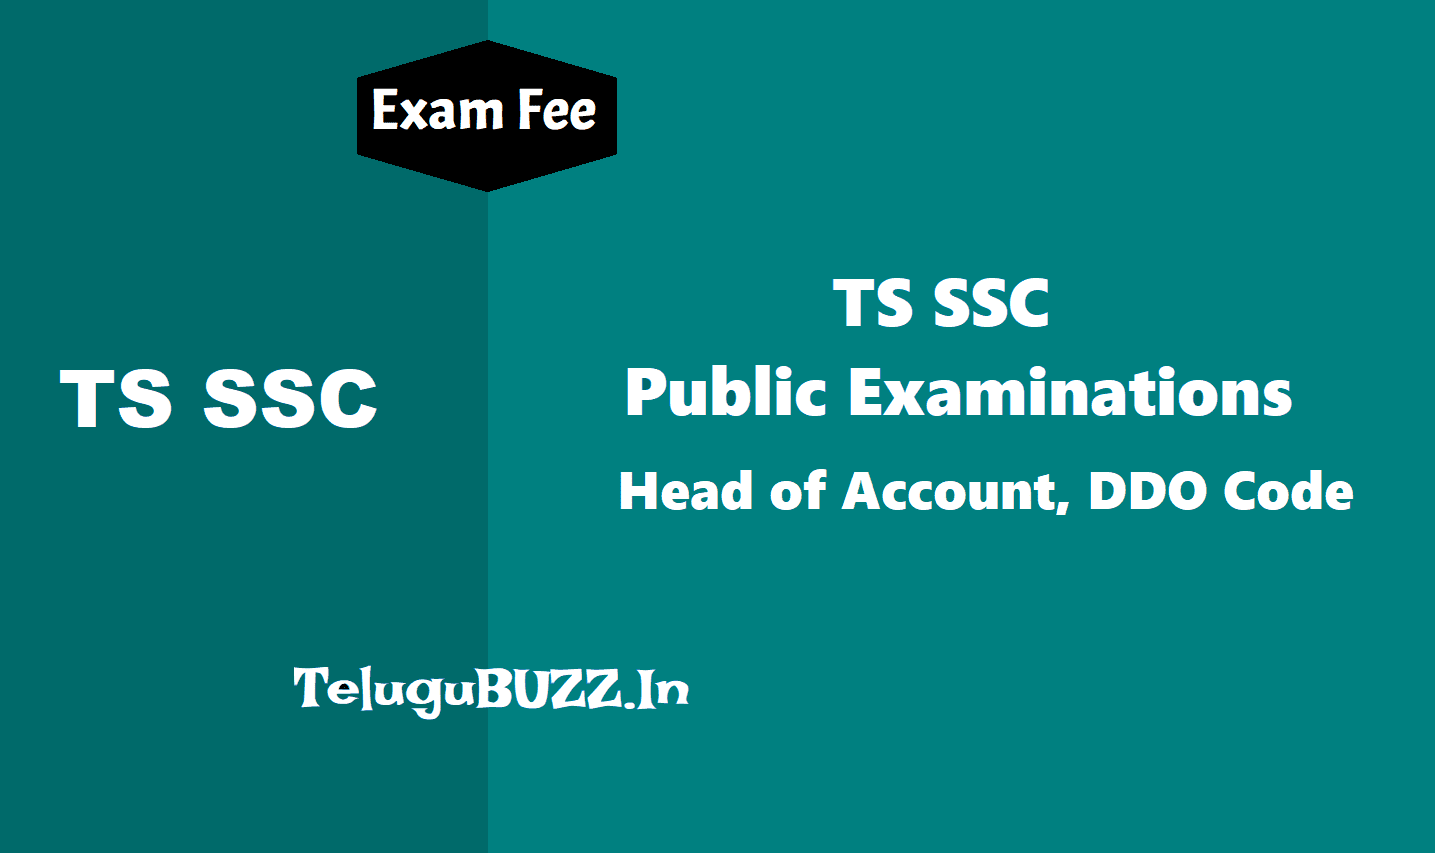 TS SSC 2019 Exams Fee Head of Account, DDO Code